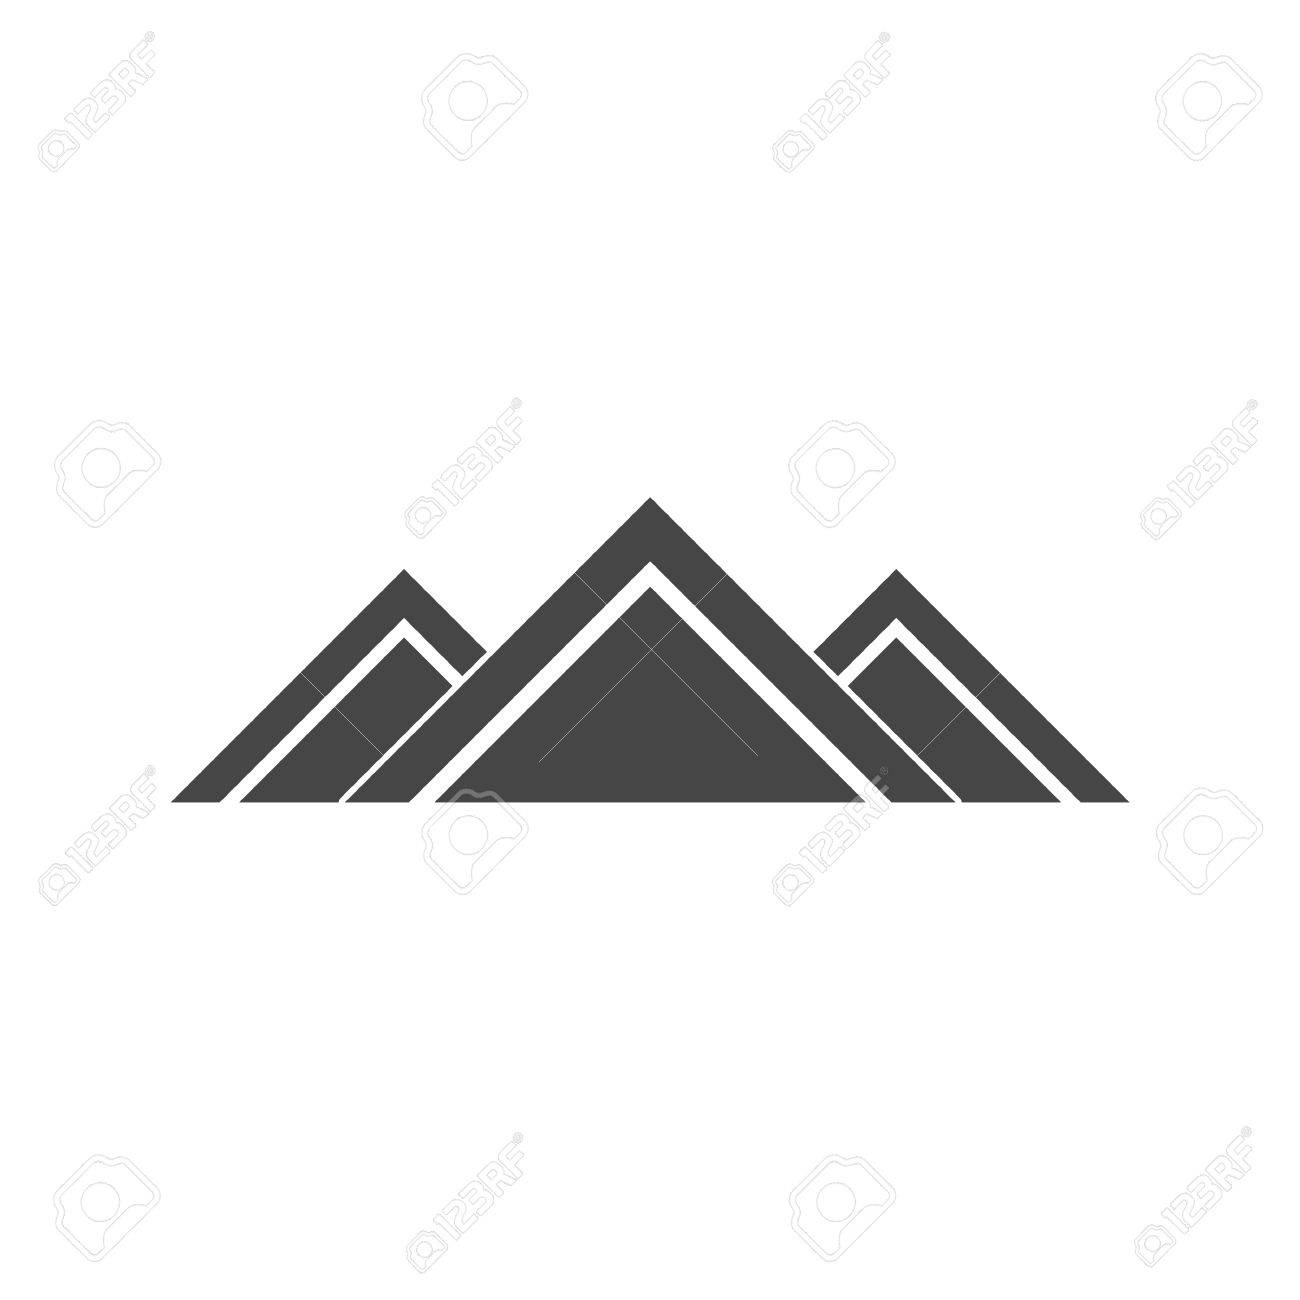 Roof Icon Roof Icon Vector Home Roof Icon Royalty Free Cliparts